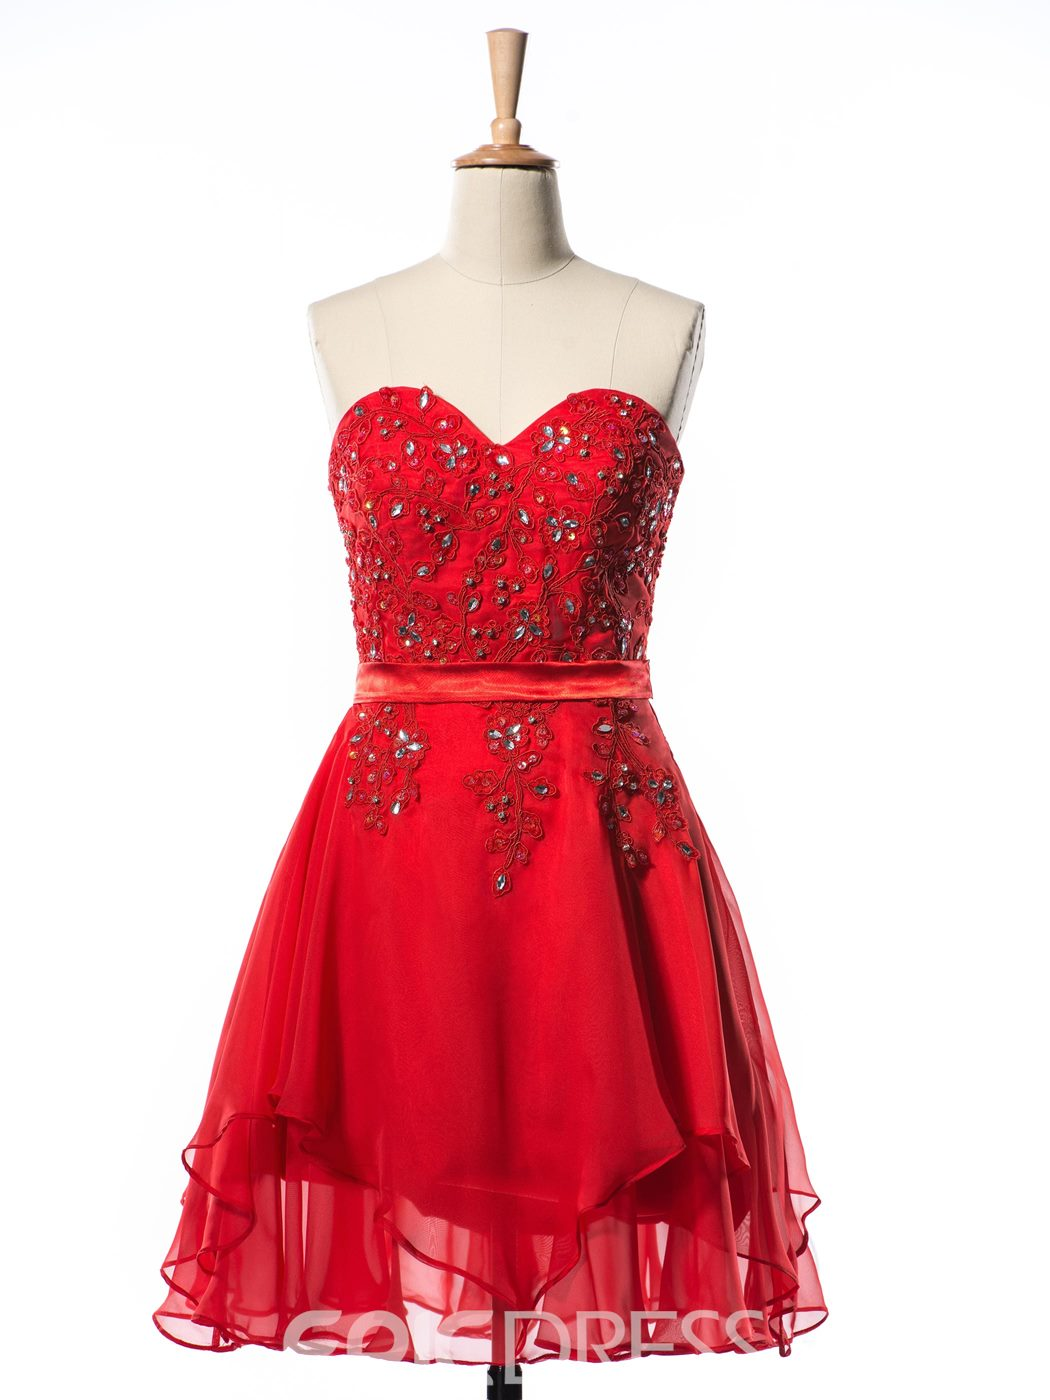 Ericdress A-Line Sweetheart Appliques Beading Short Homecoming Dress